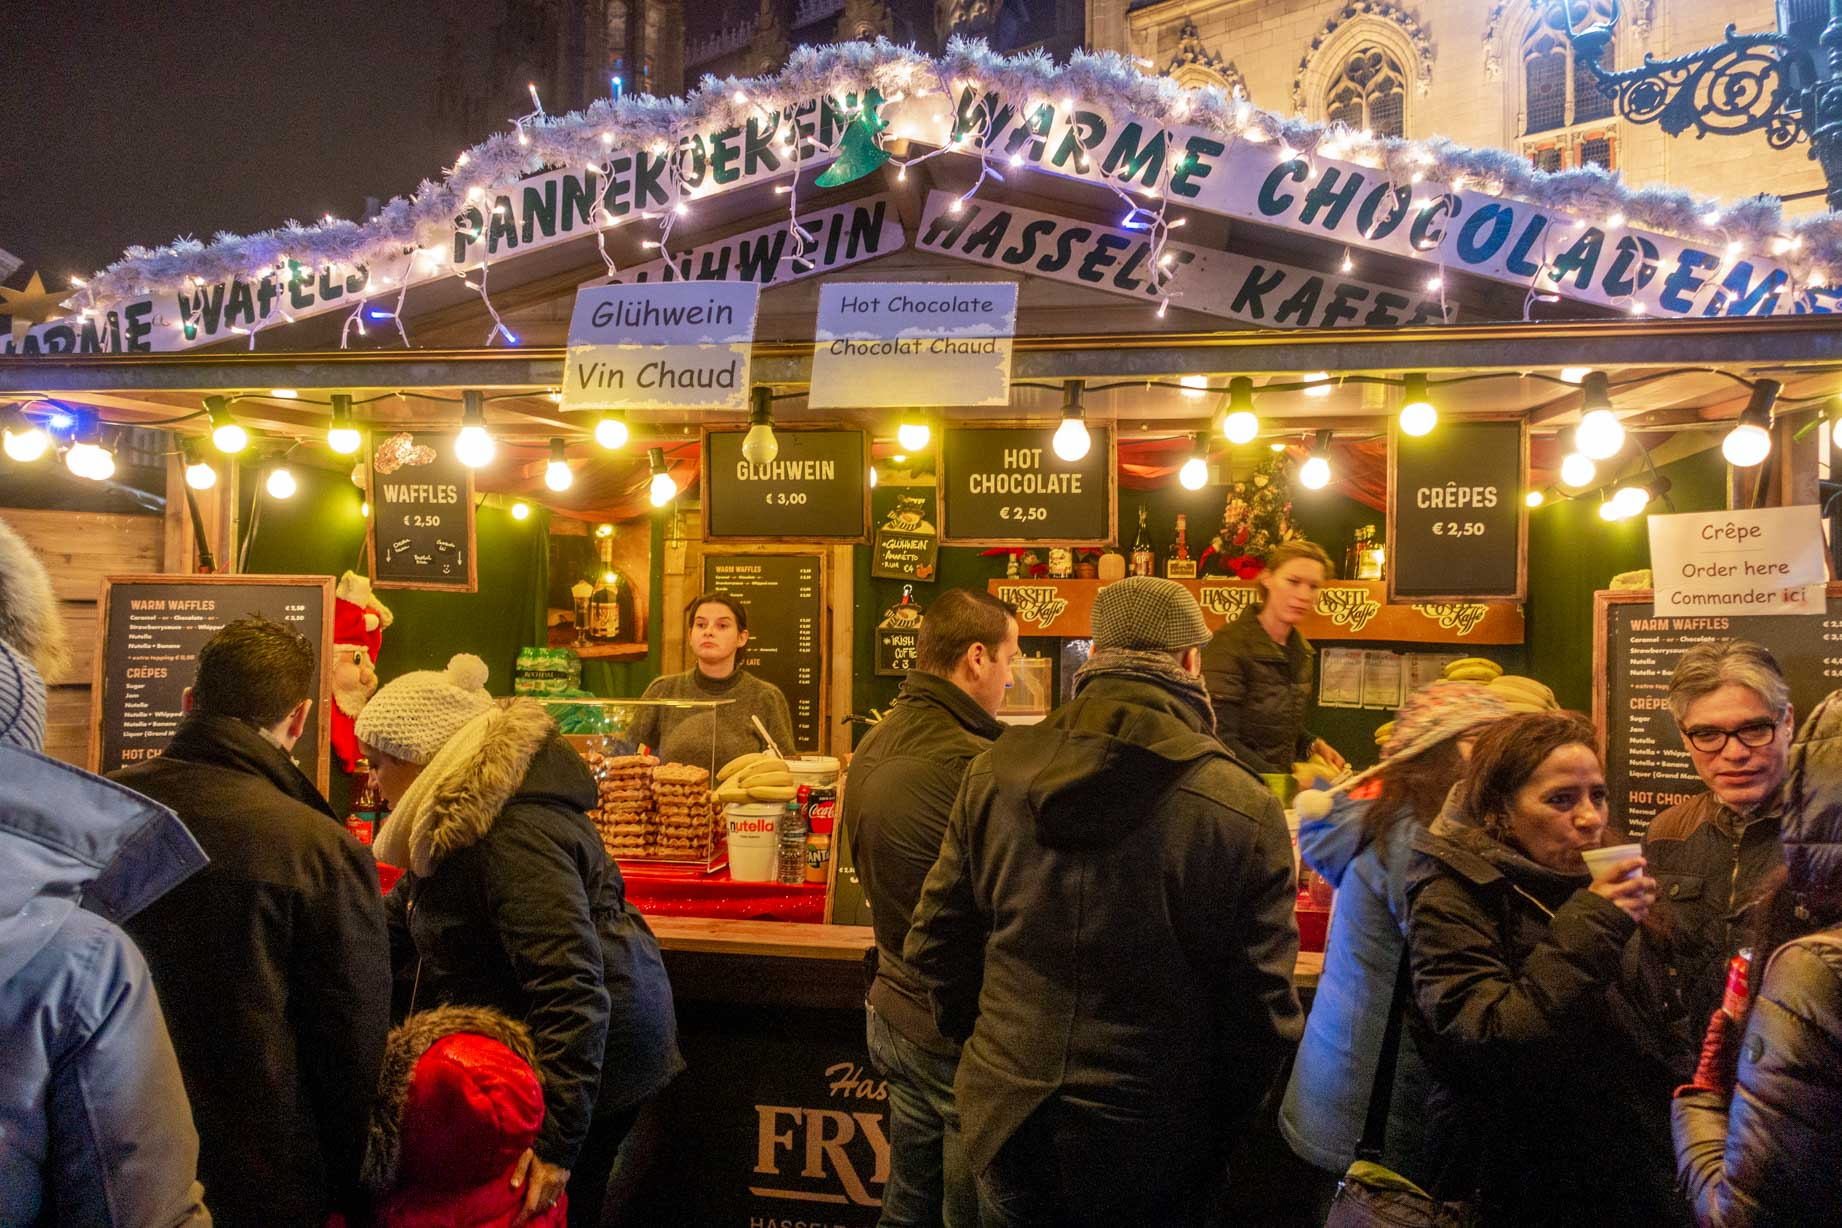 Shoppers lined up to buy drinks at the Christmas market